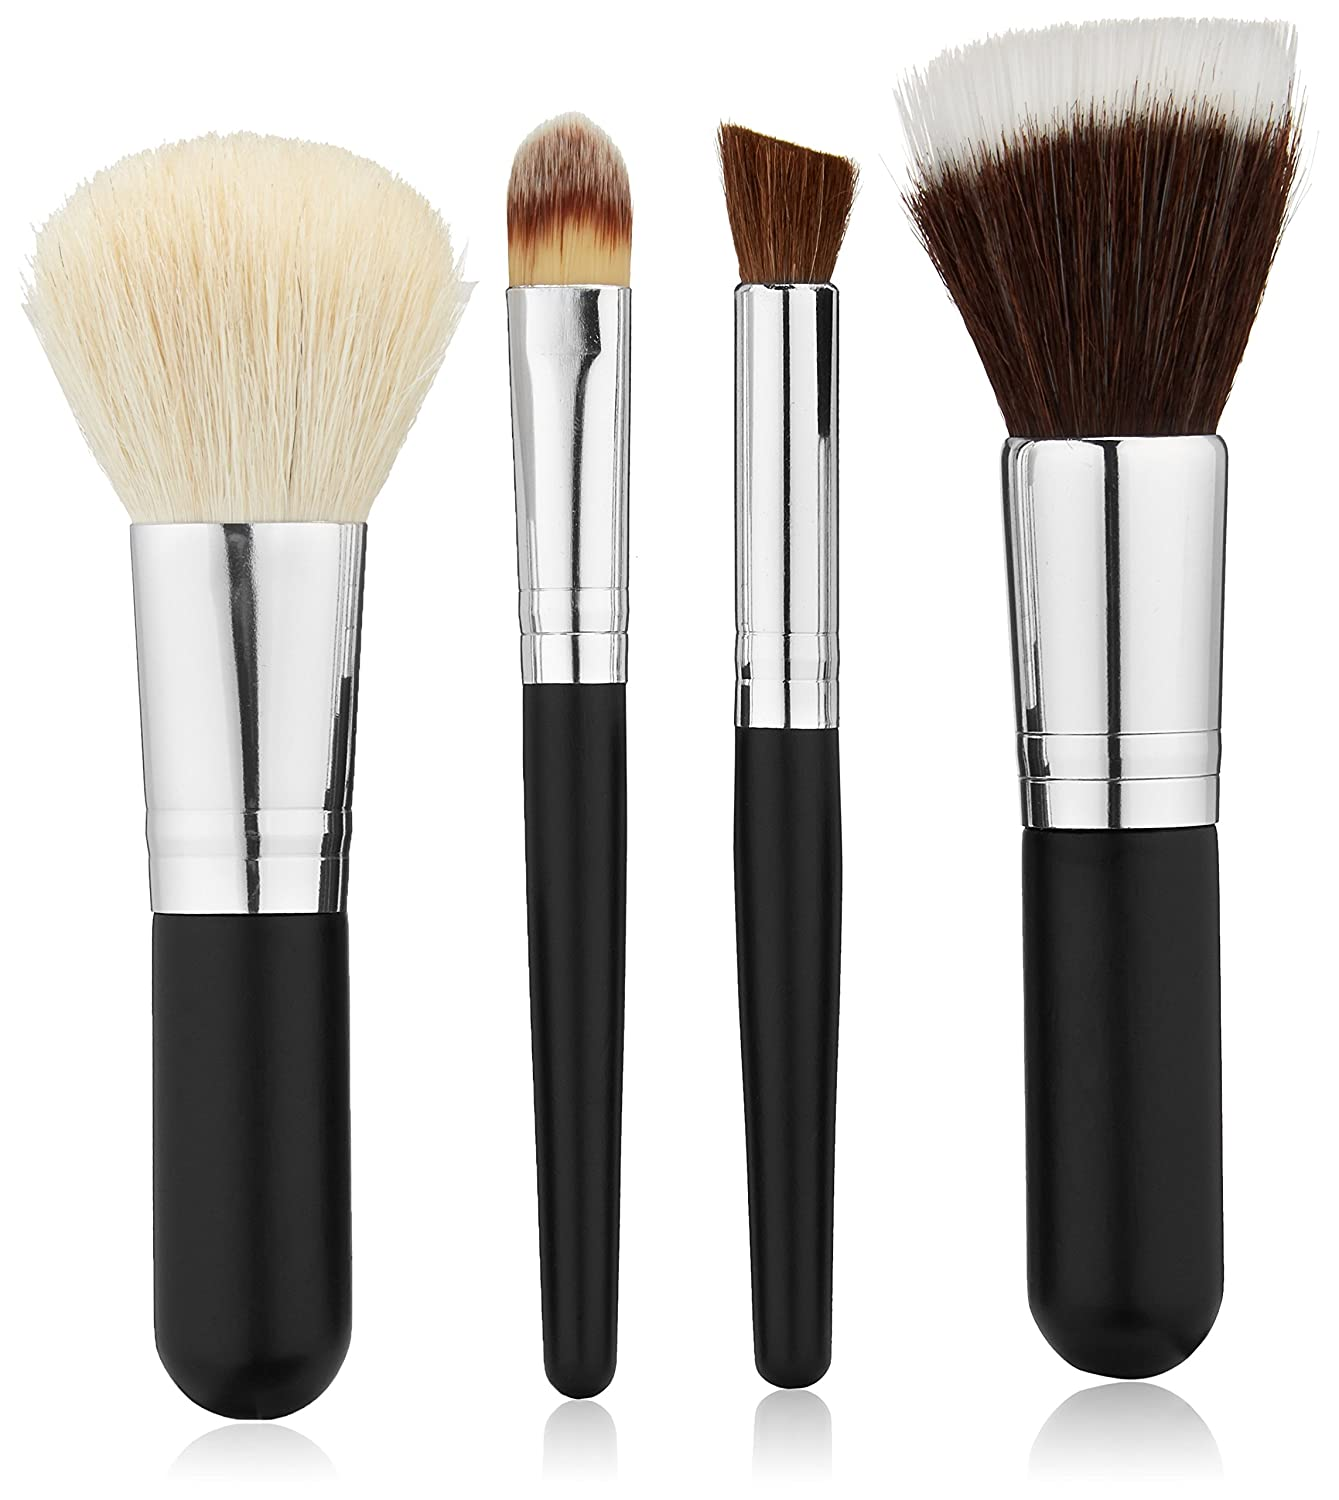 Amazoncom Studio Basics Mineral Makeup Brush Set With Soft, Natural,